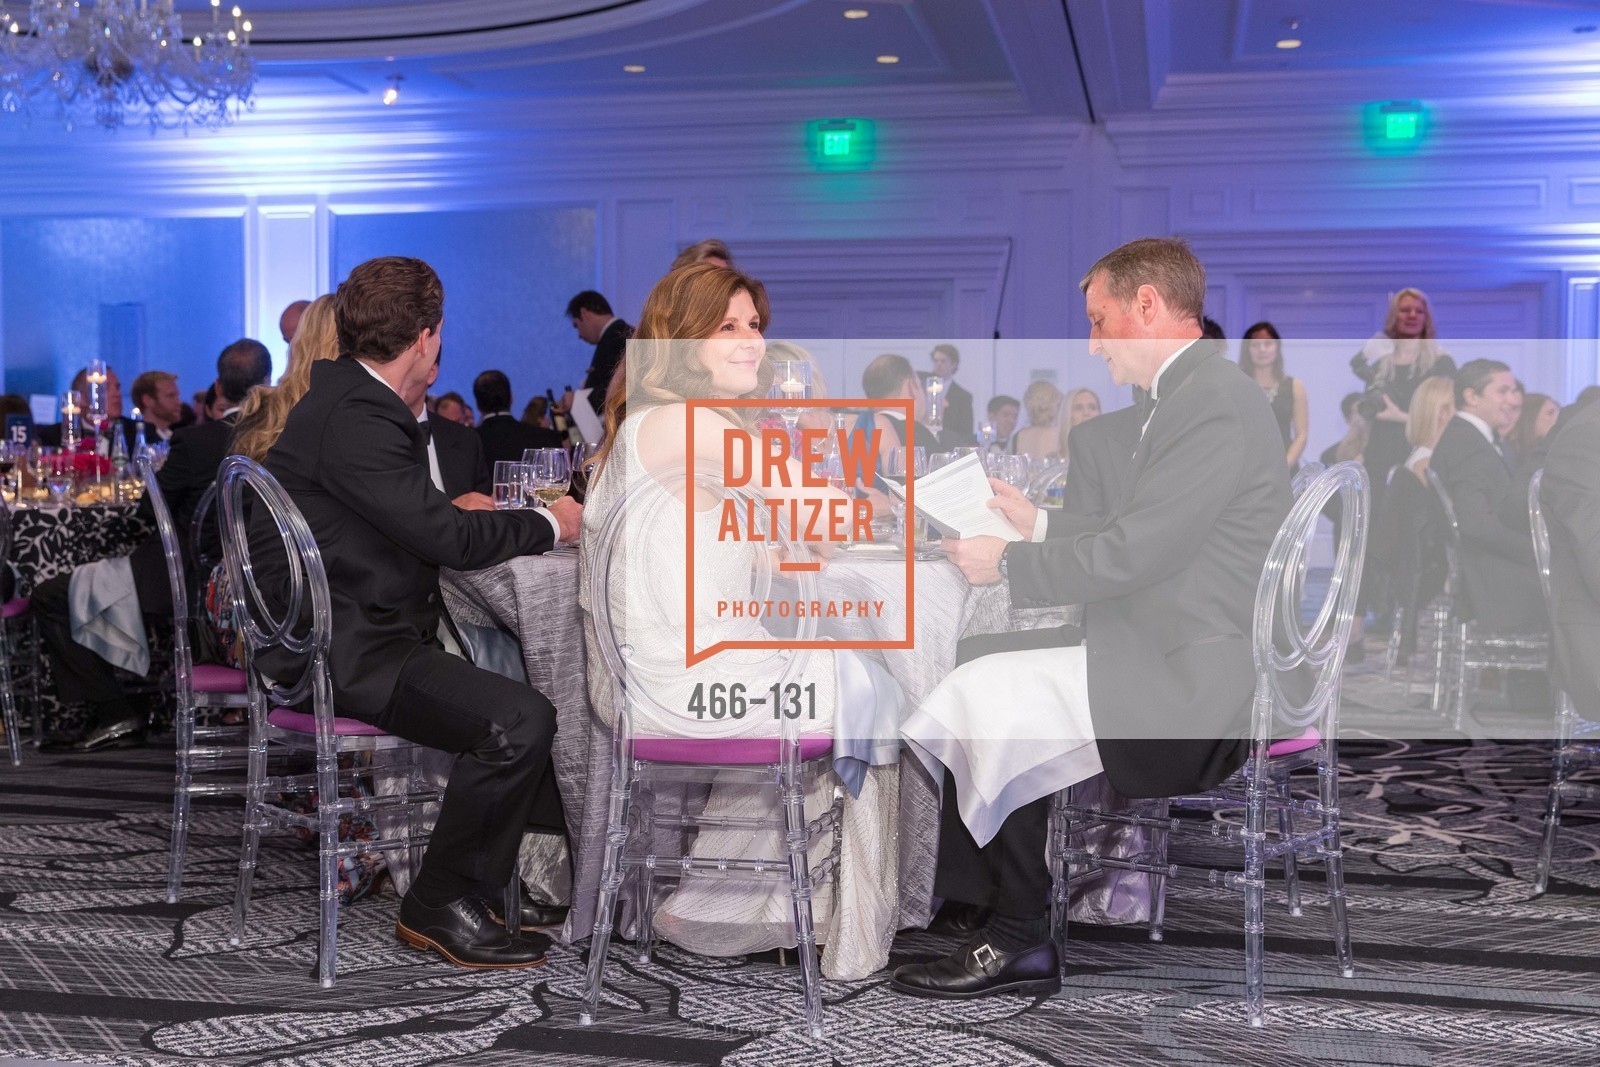 Beth Wiesbrock, JUVENILE DIABETES RESEARCH FOUNDATION  Hope Gala, The Ritz-Carlton, May 29th, 2015,Drew Altizer, Drew Altizer Photography, full-service event agency, private events, San Francisco photographer, photographer California